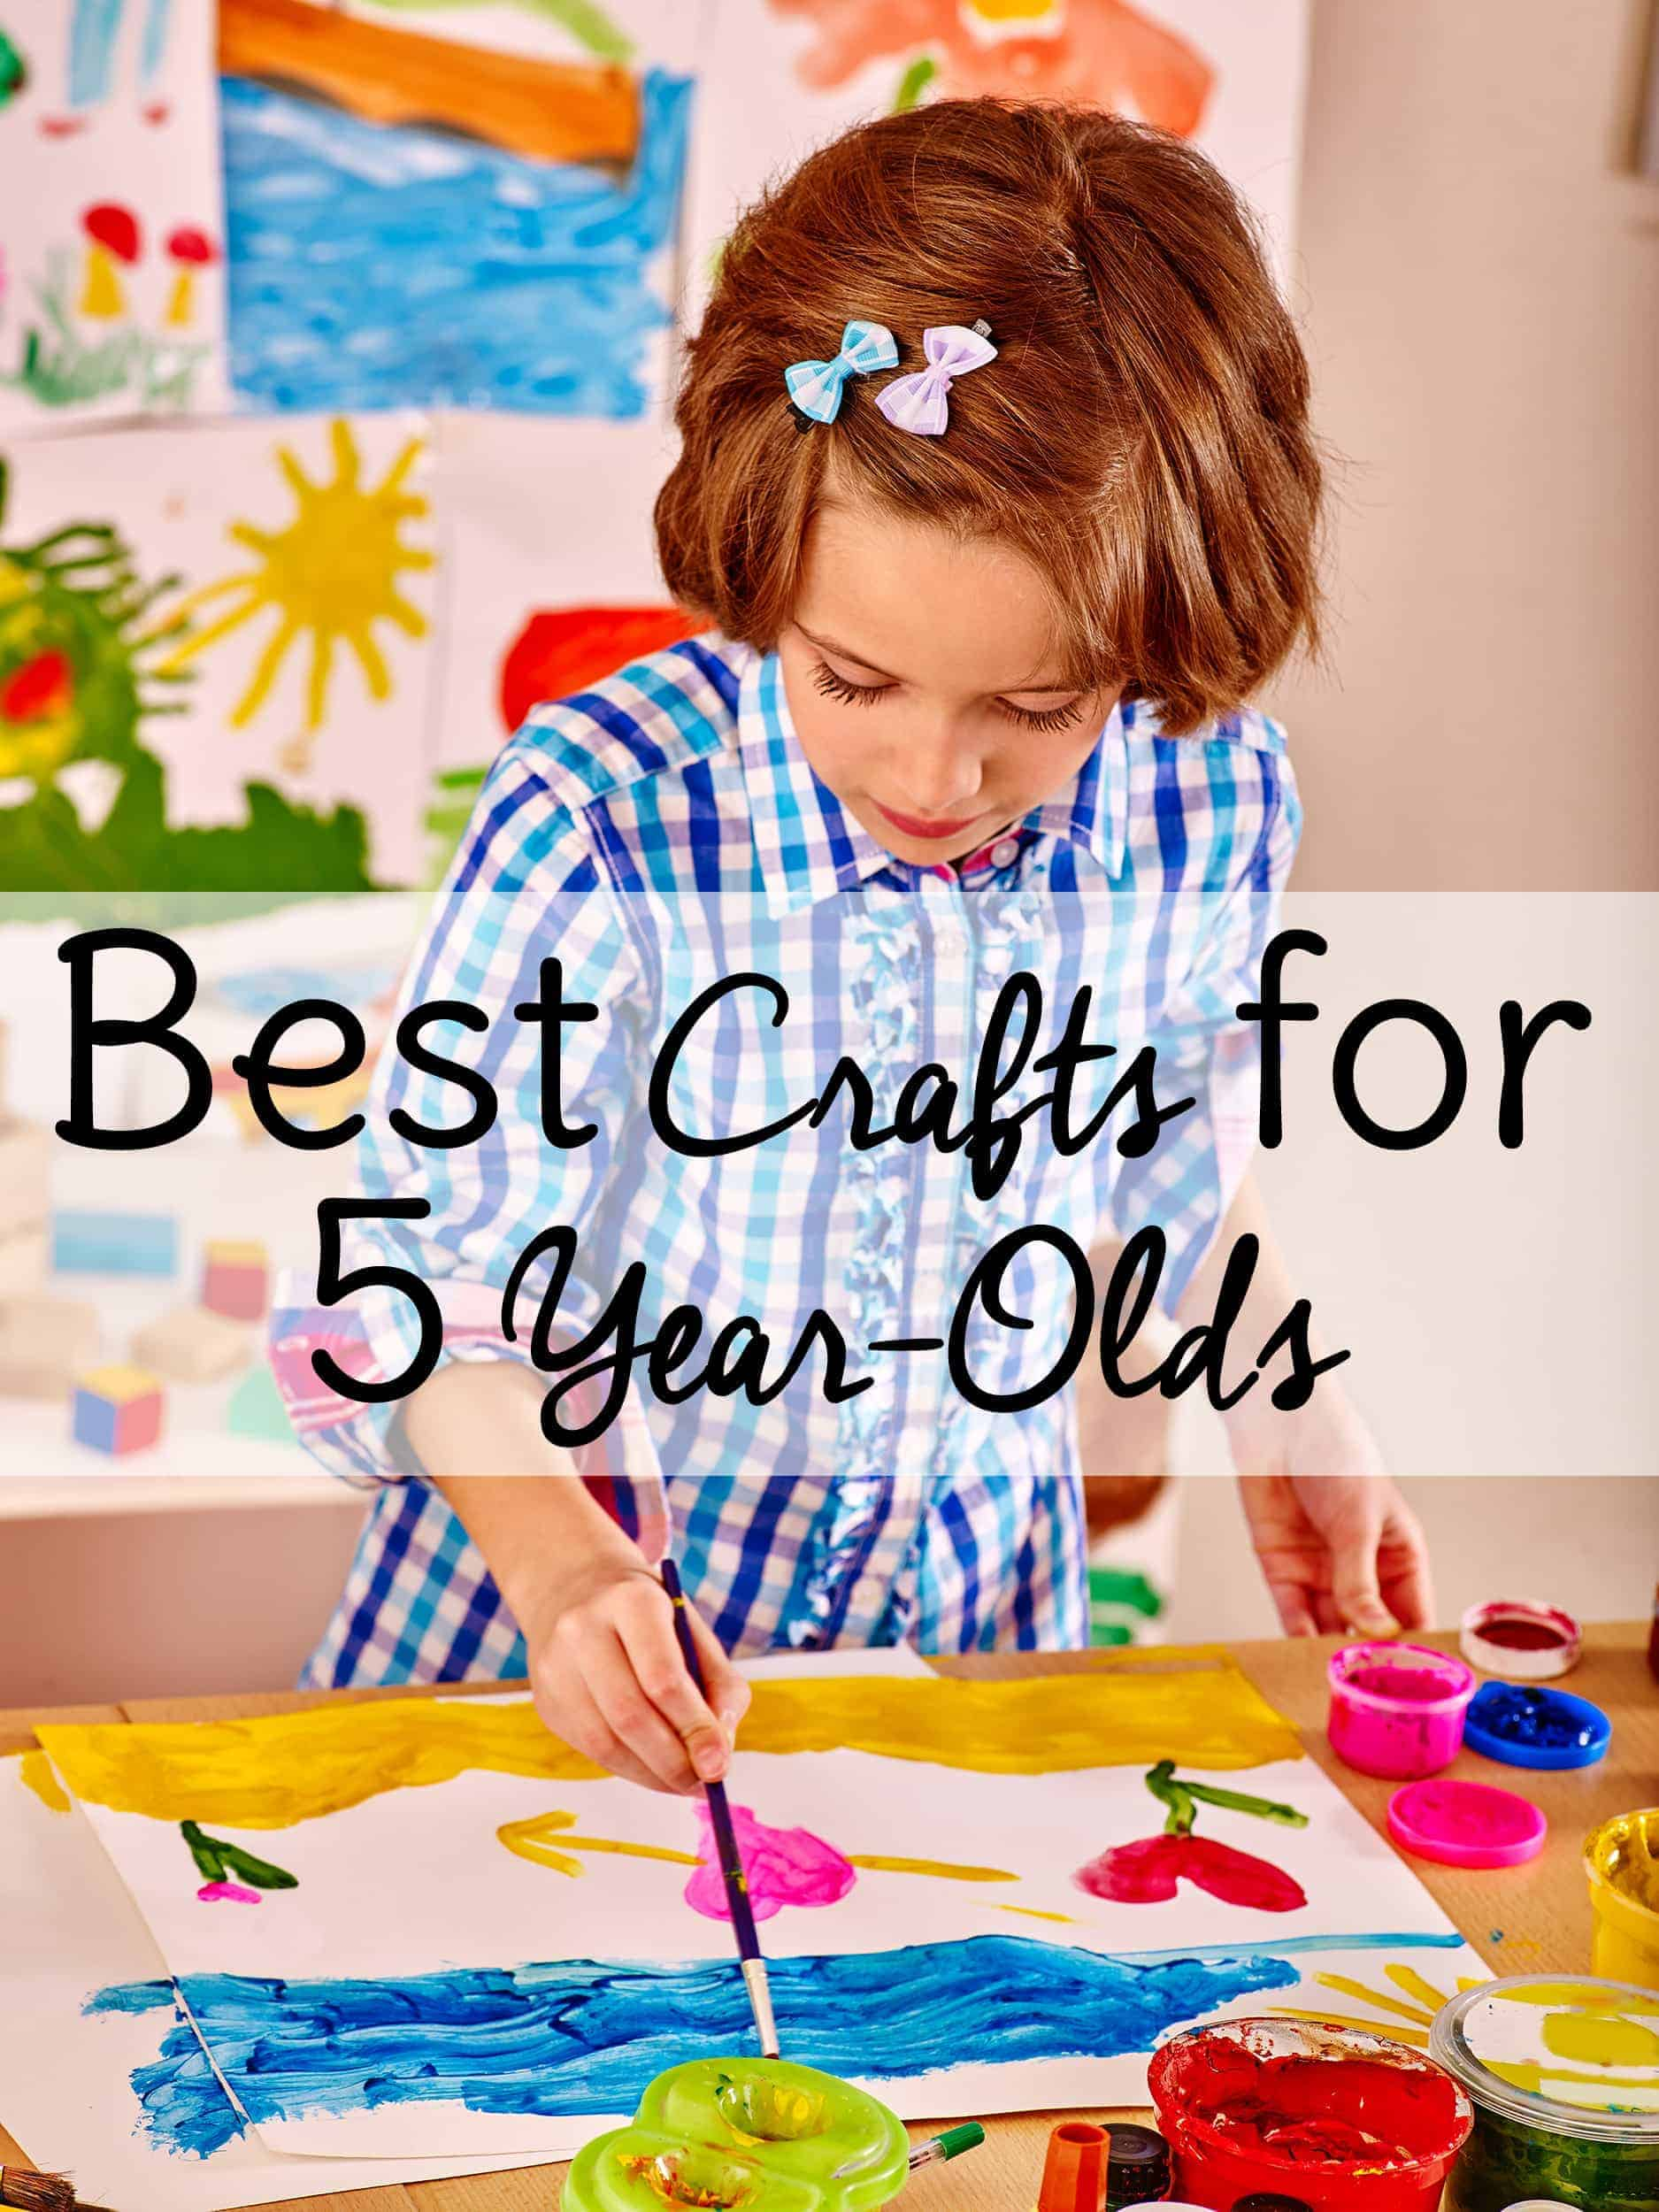 best crafts for 5 year olds christmas gift ideas sweet